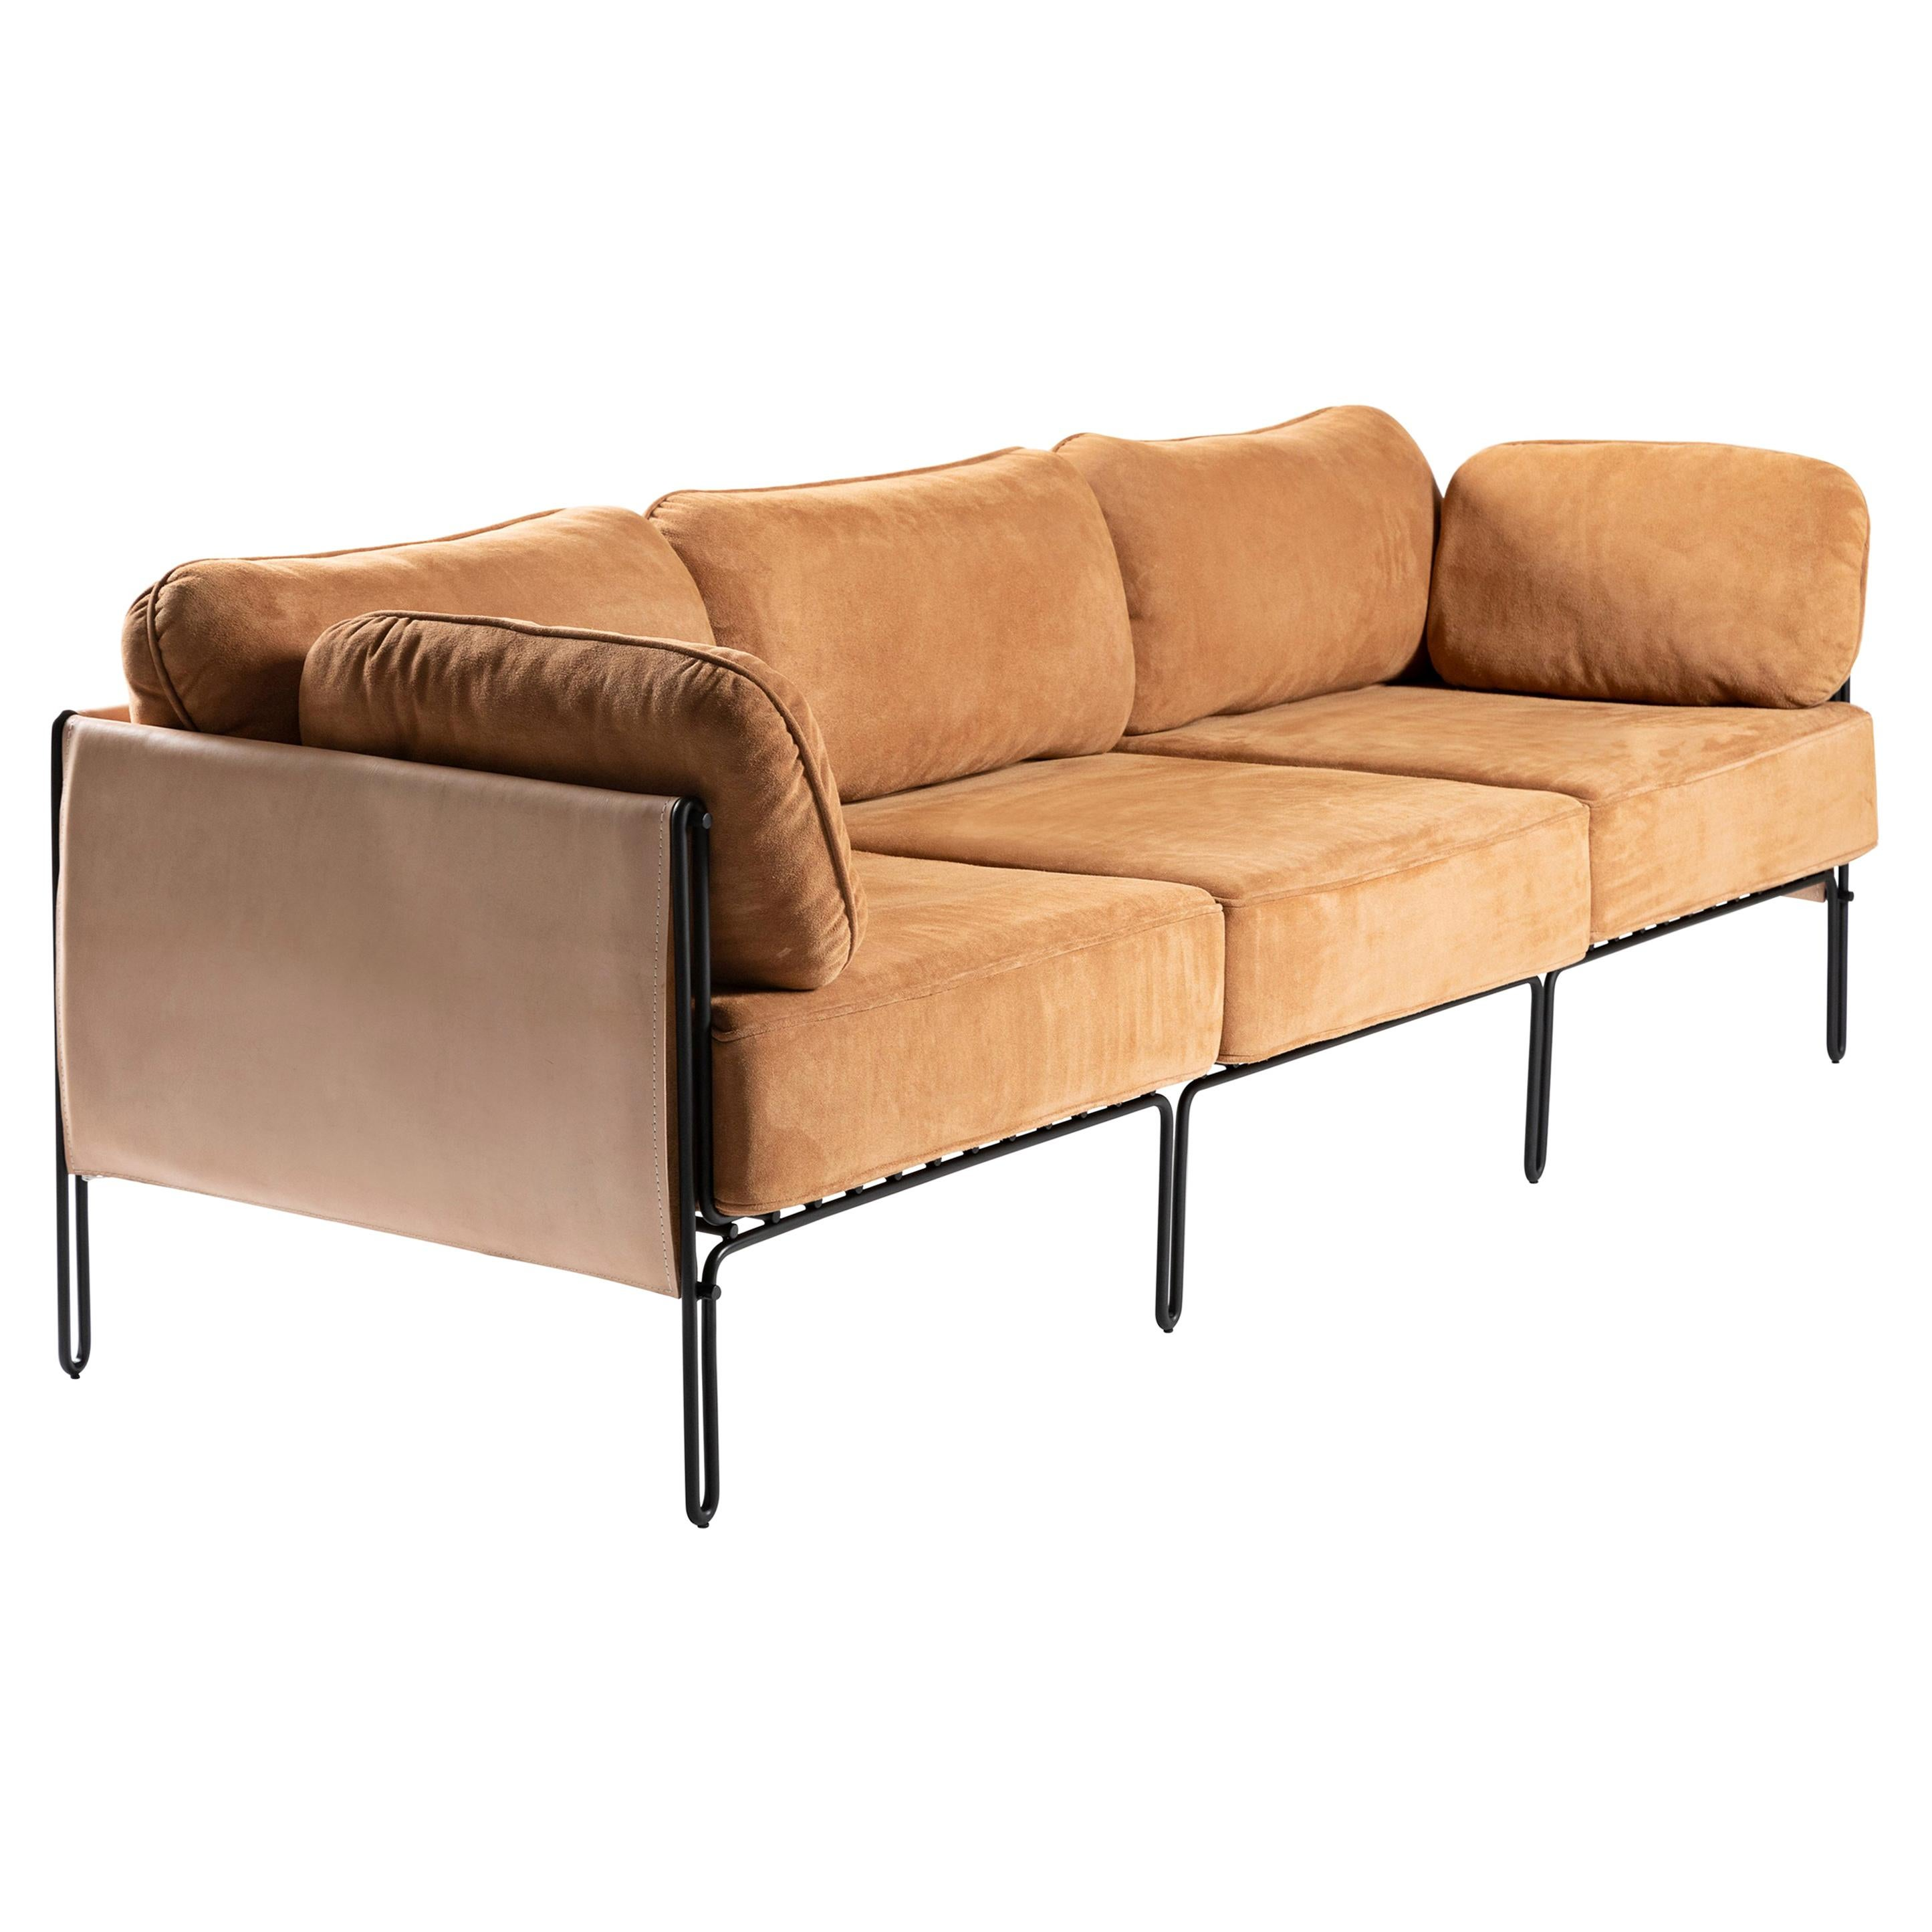 Sofa Jequitiba Nova America Brazil Furniture 2 843 For Sale At 1stdibs